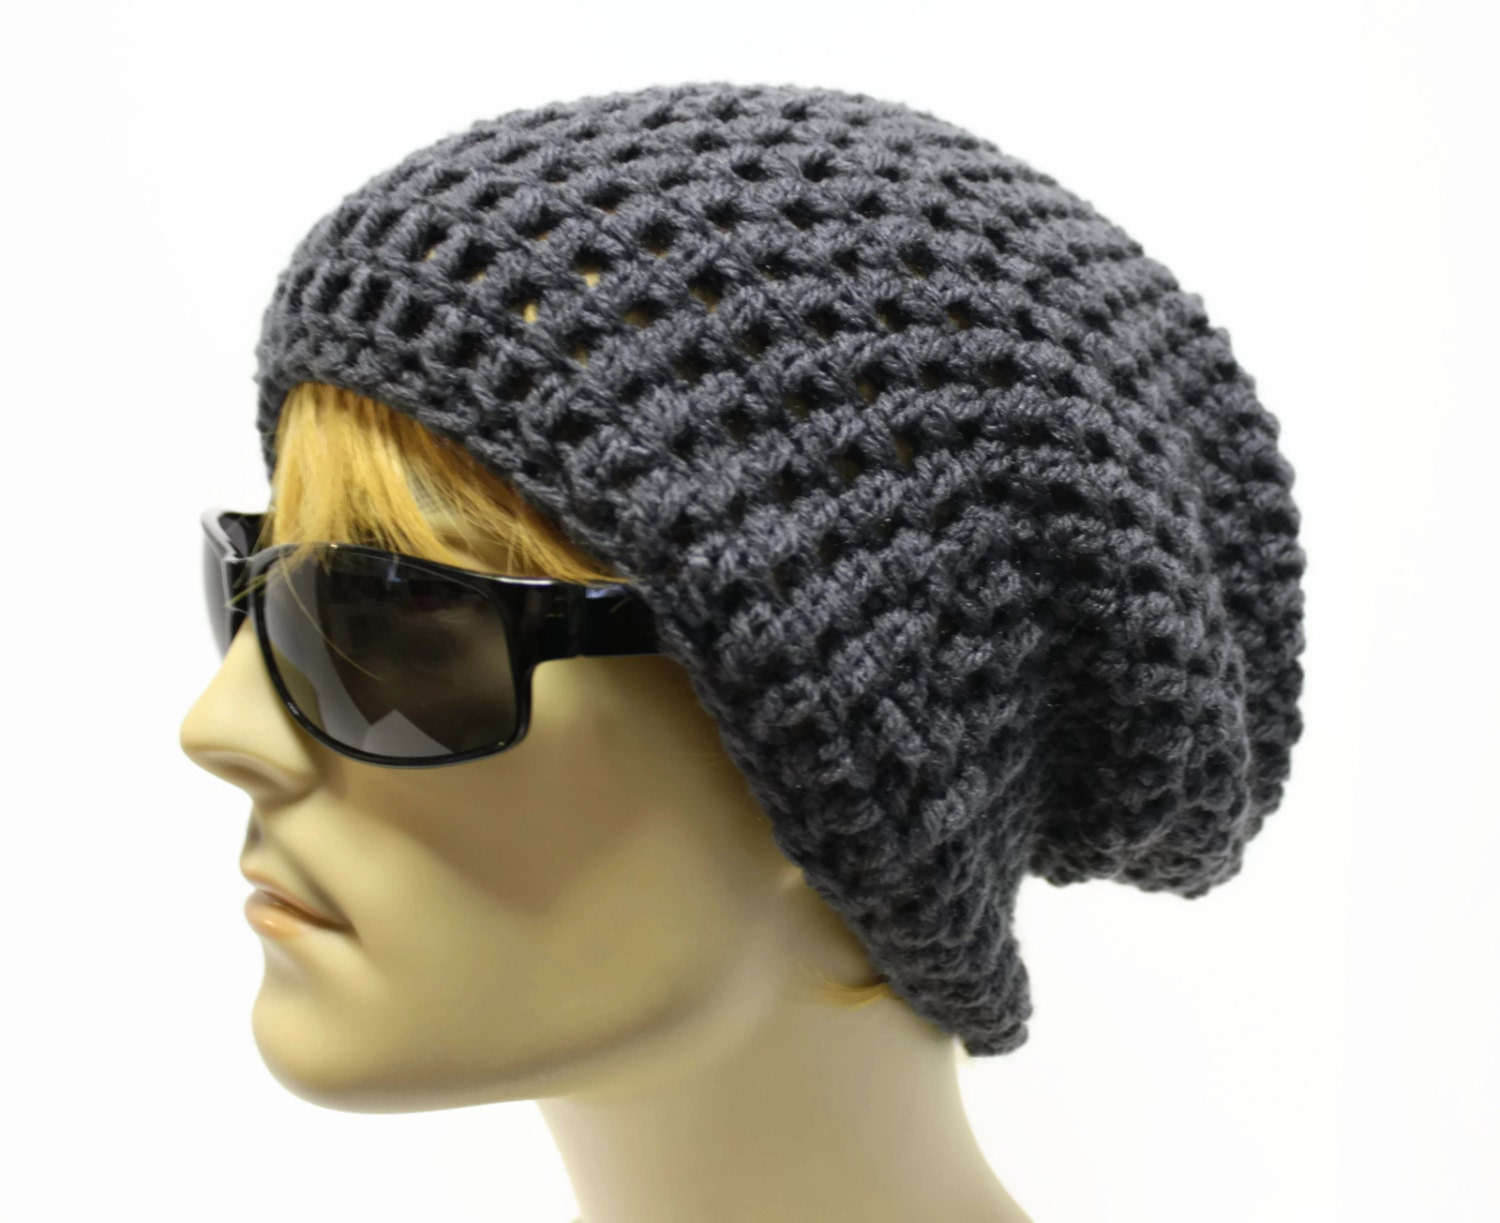 Mens Slouchy Beanie Knitting Pattern : Slouchy Beanie Crochet Pattern Men images